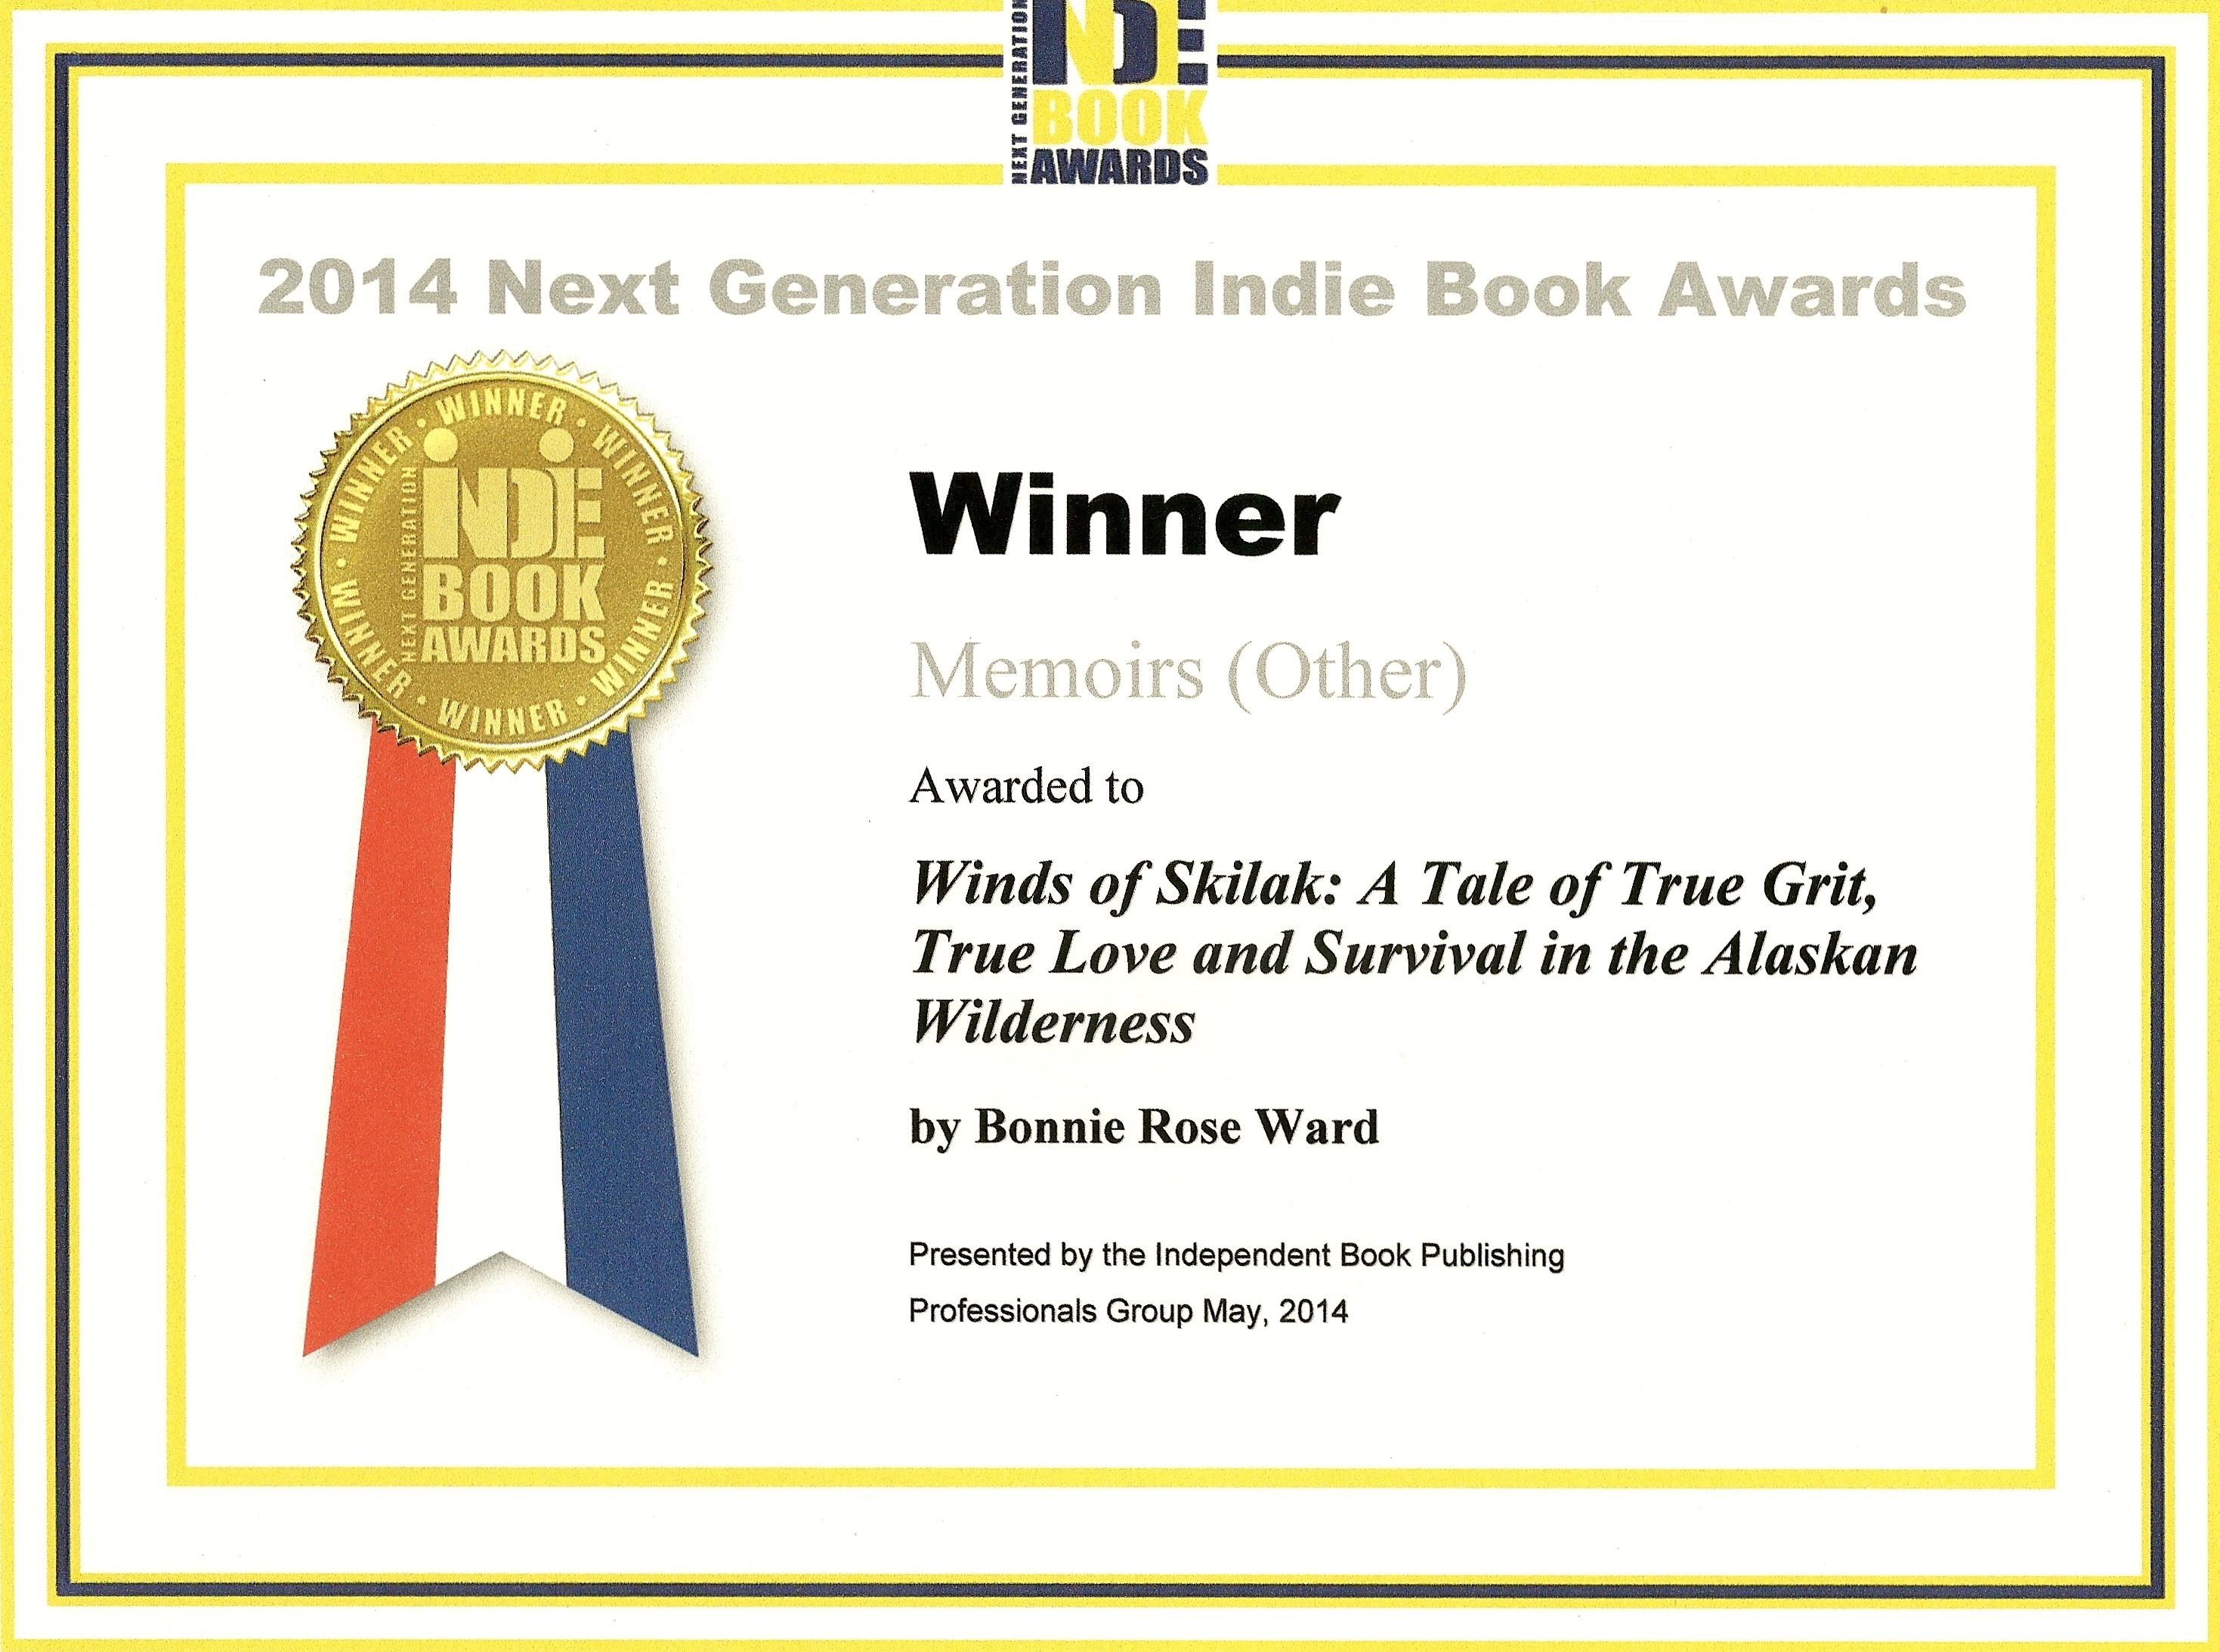 WINDS OF SKILAK is the WINNER of the 2014 Next Generation